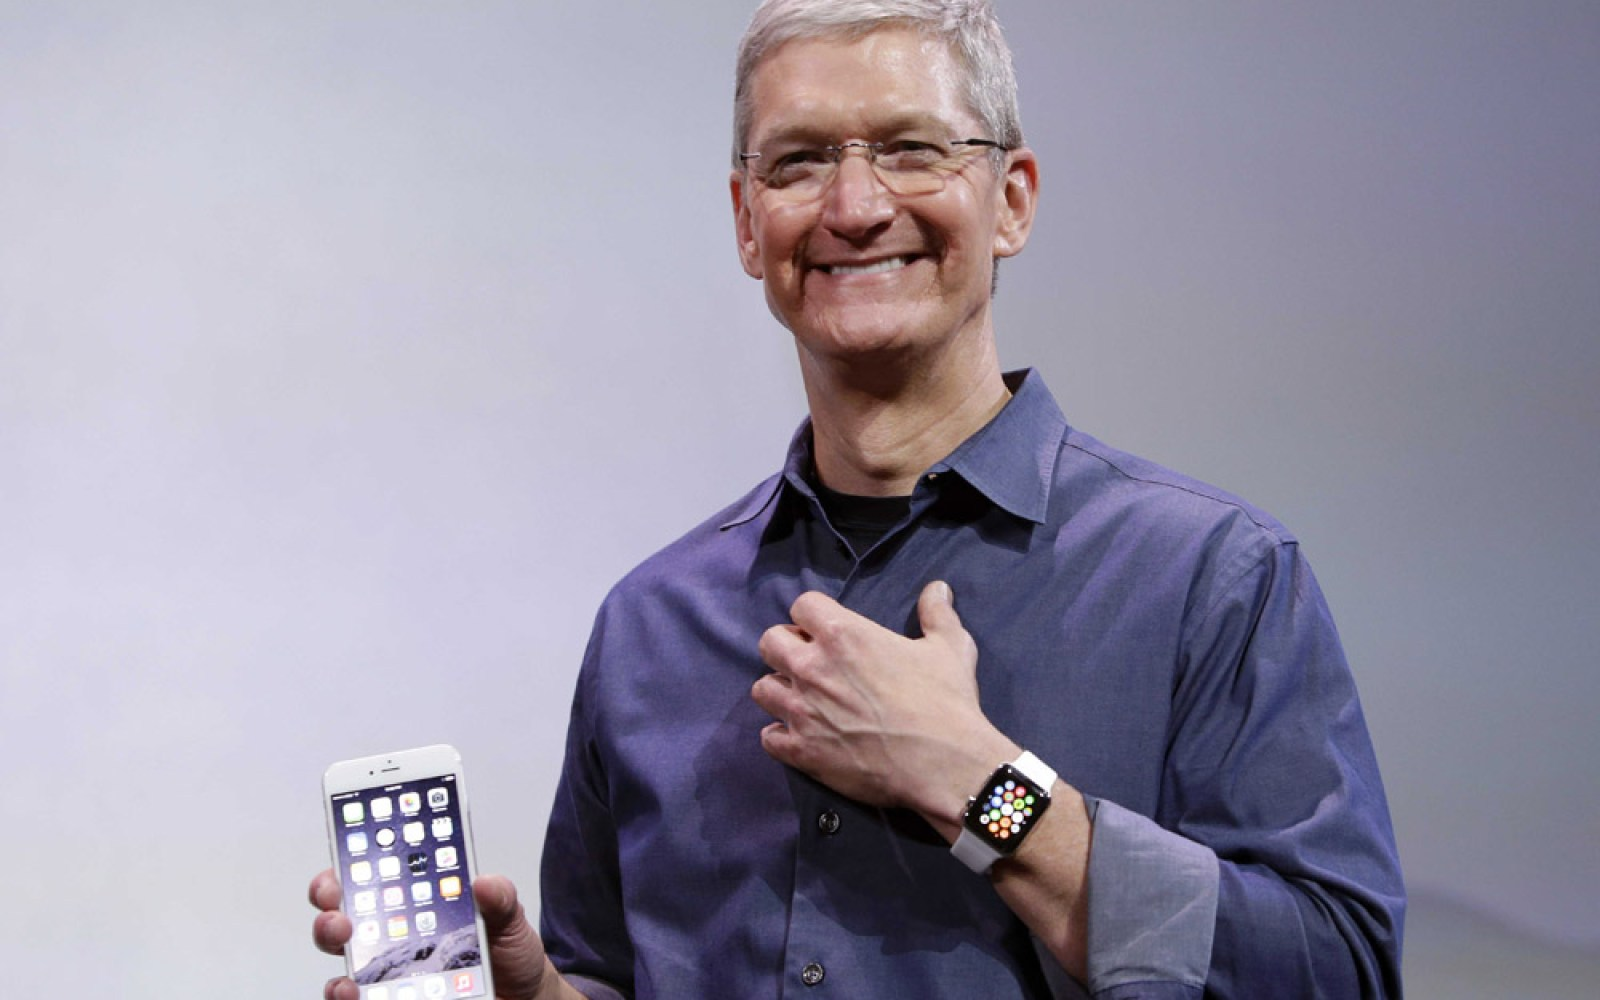 Tim Cook: Apple Watch will replace car keyfobs, reward exercise, filter messages